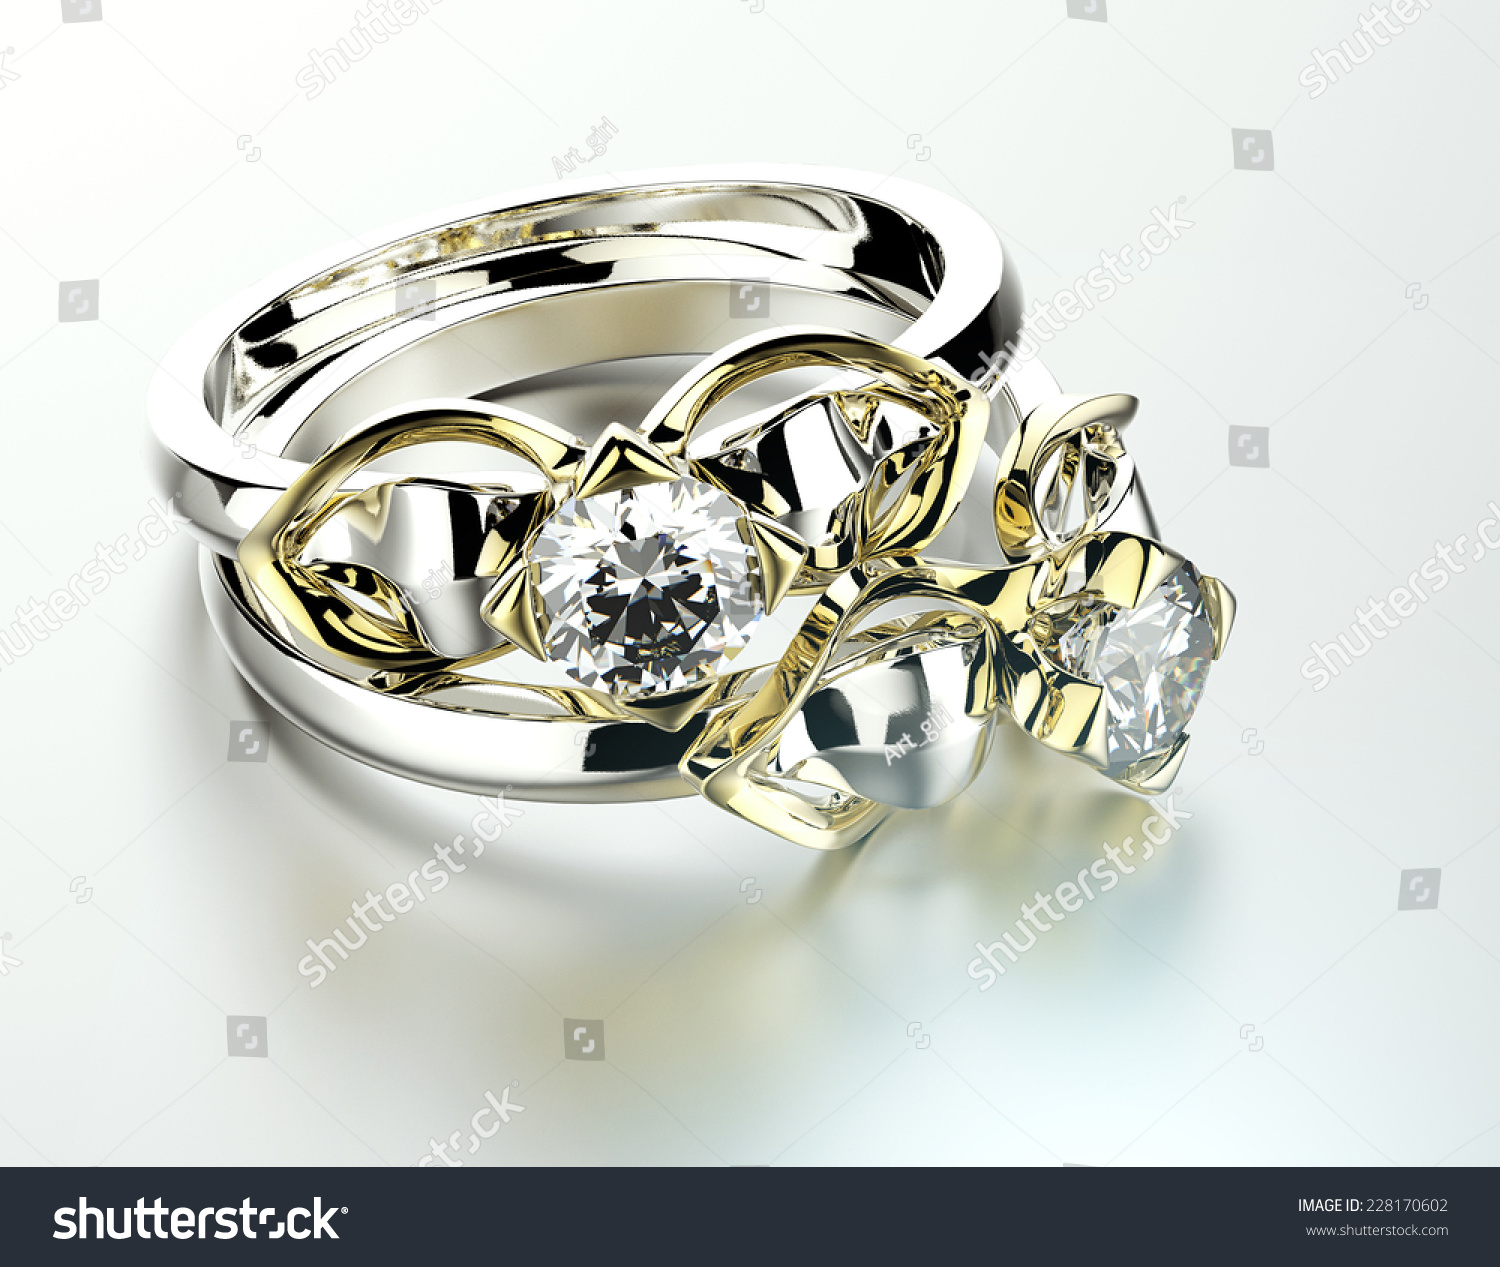 engagement center rose main weddings gold stone gigantic with ring ll youll need sunglassess gallery you glamour diamond rings sunglasses cut so sparkly